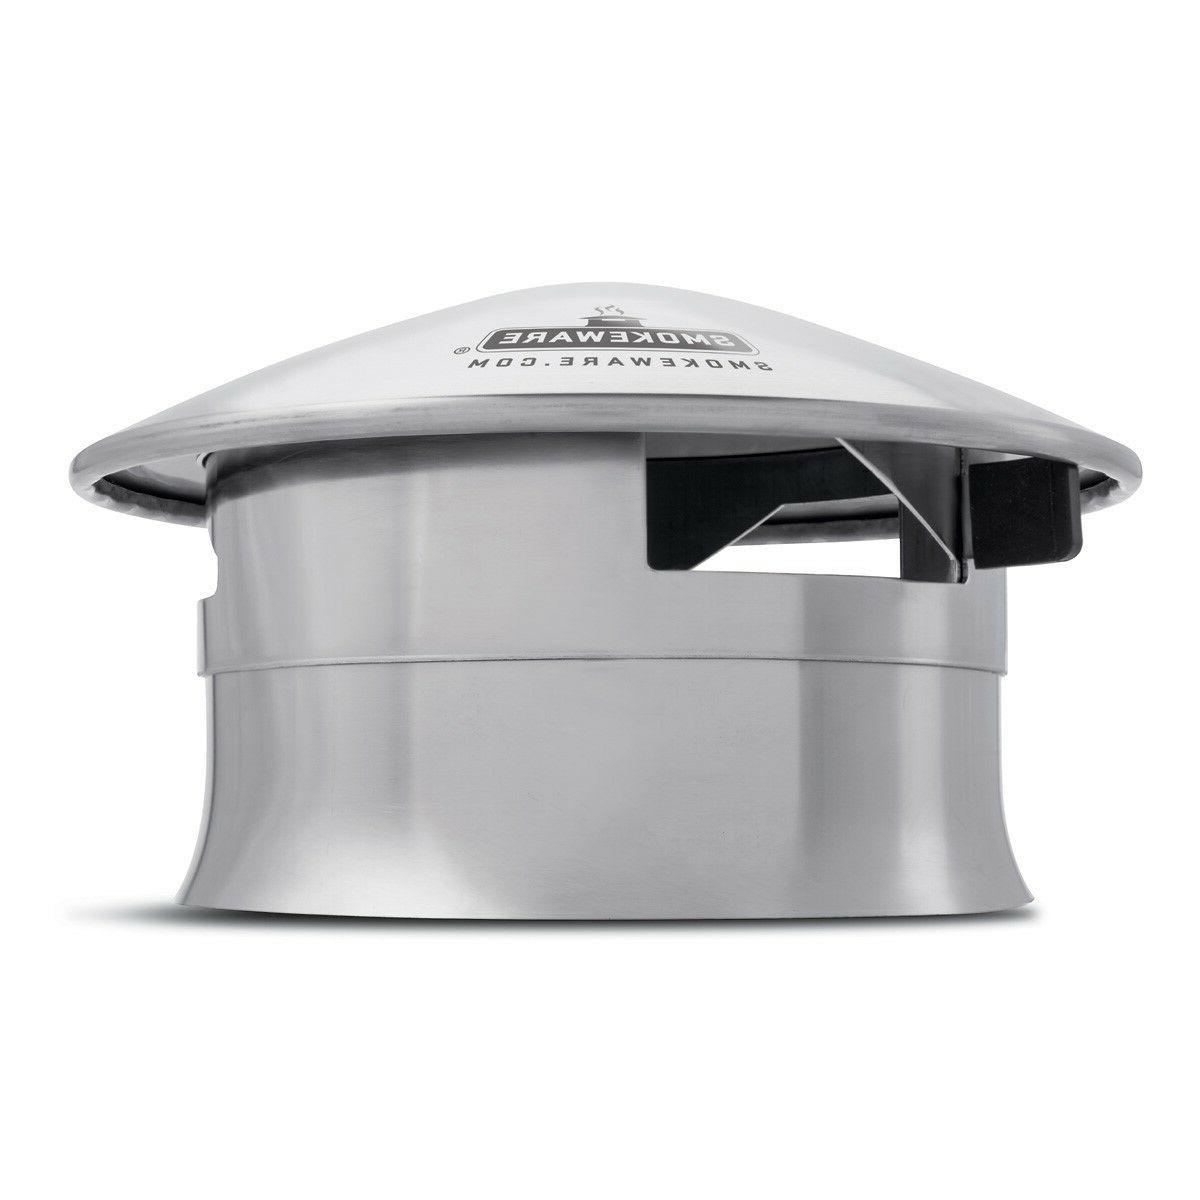 SmokeWare SS Vented Chimney Cap for Big Green Egg